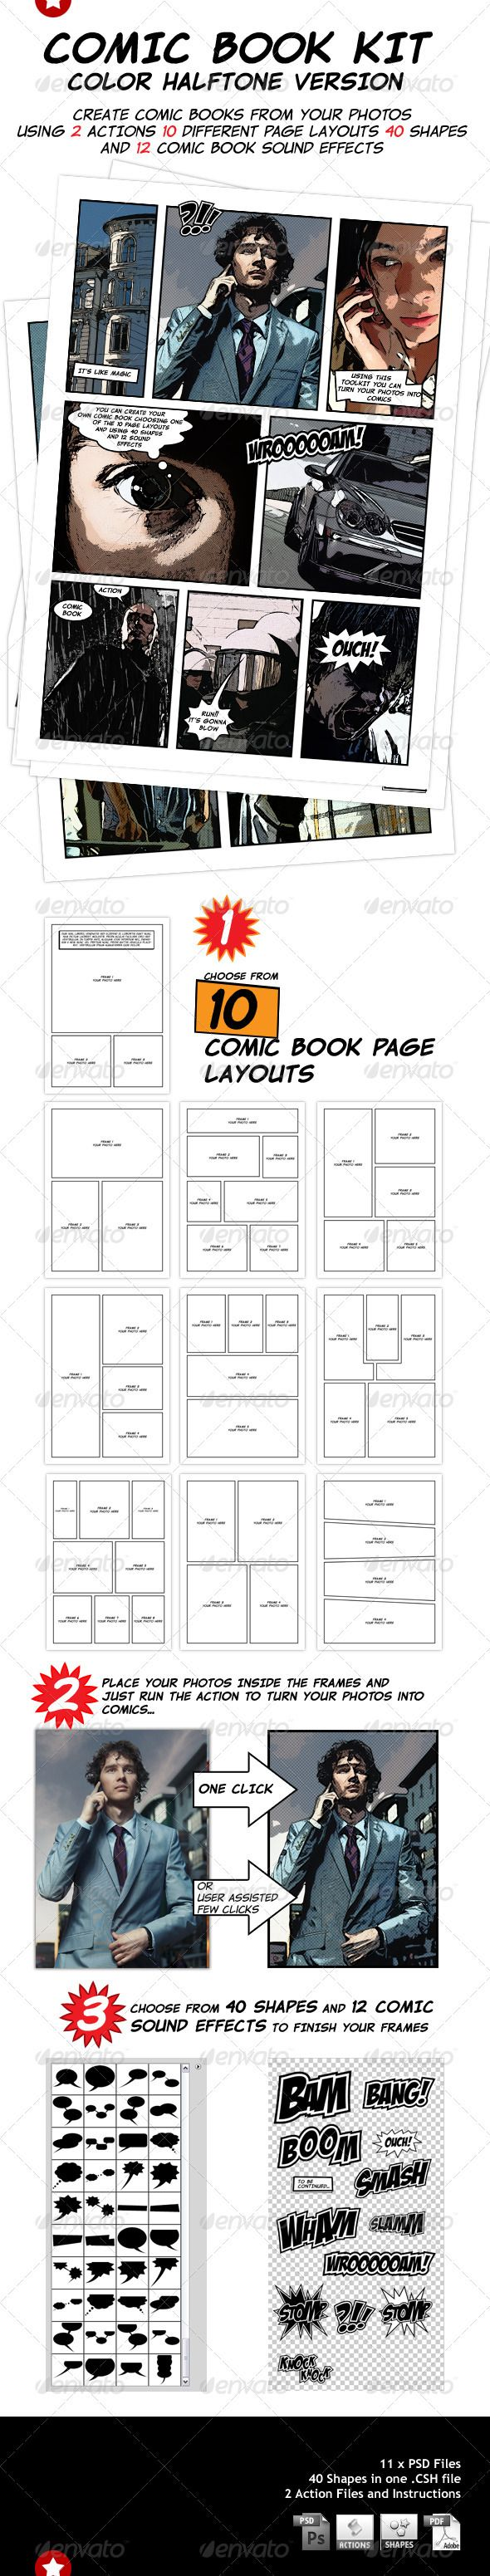 You can choose from 10 comic book page layout templates for Comic book page template psd